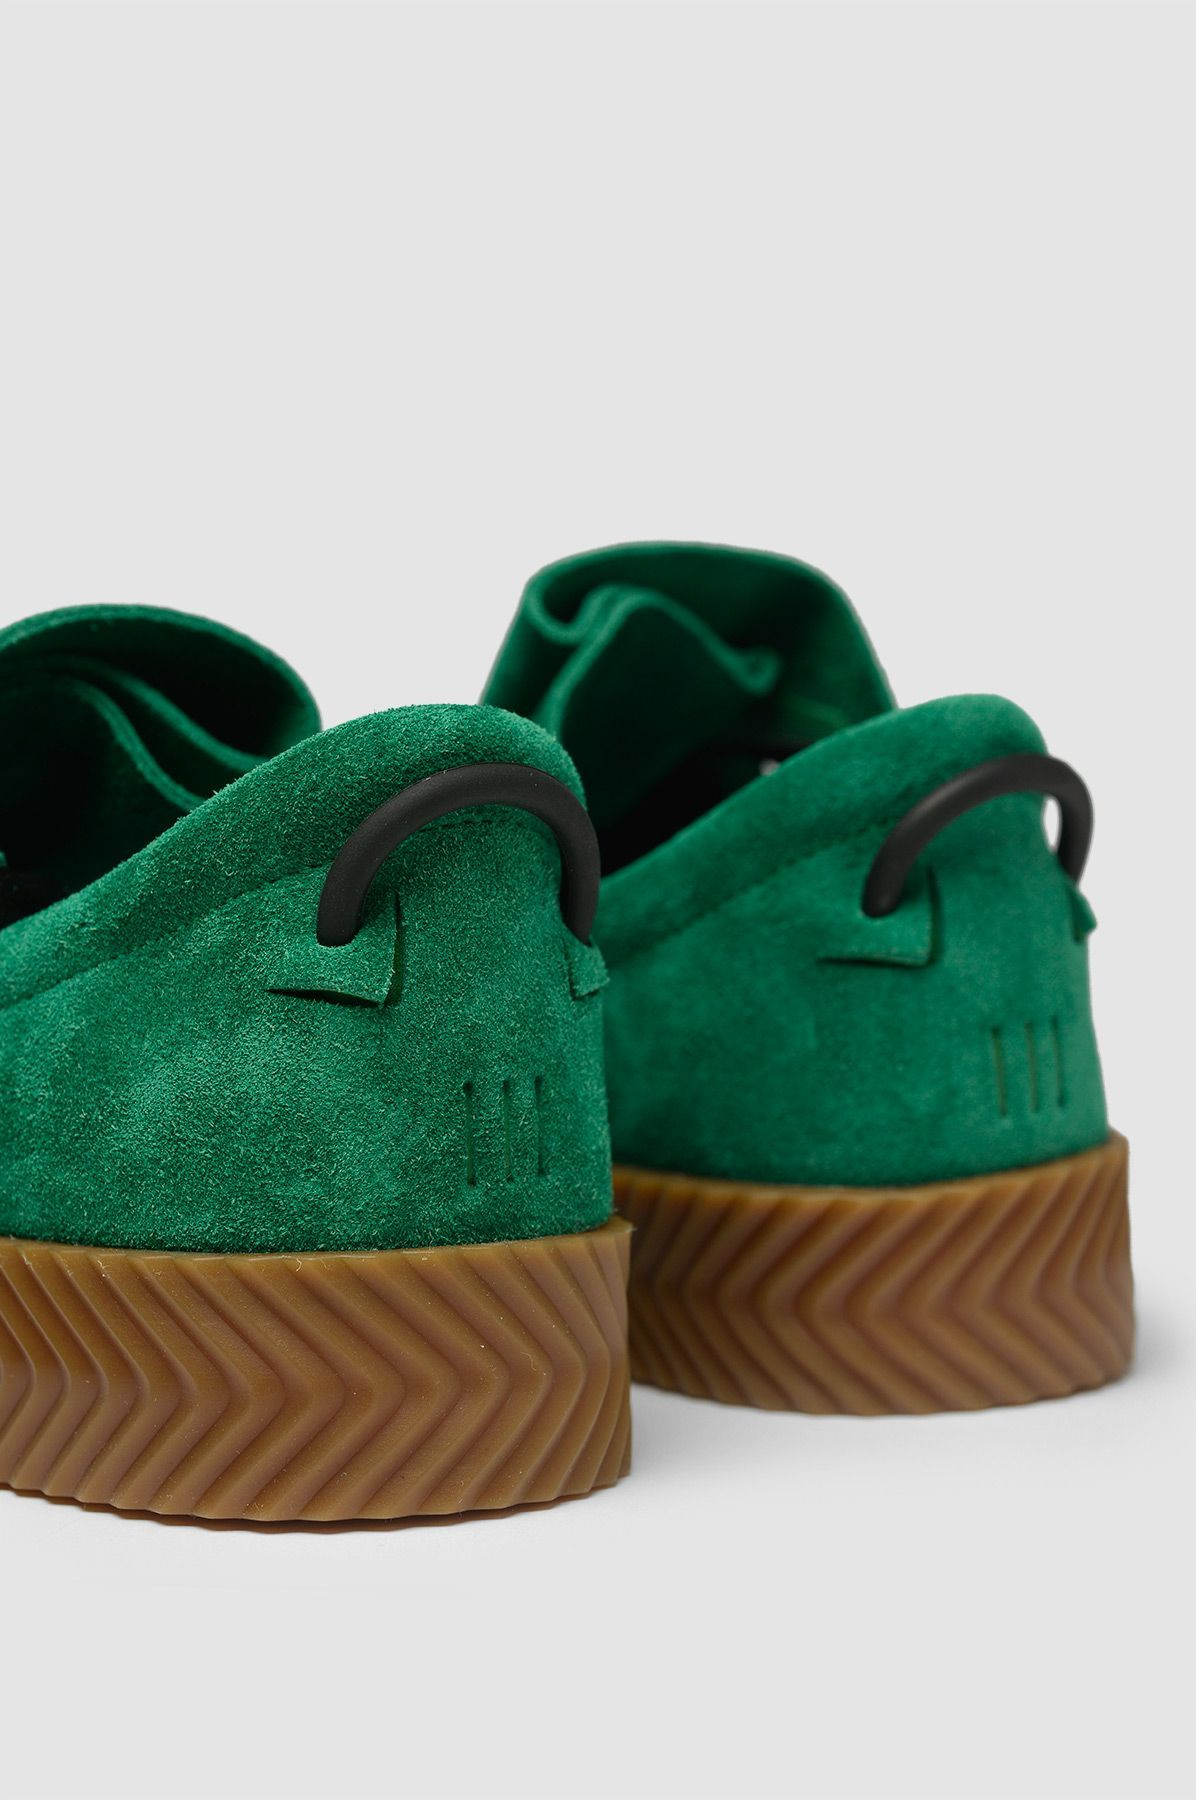 fd2a268b1ab6c1 ADIDAS X ALEXANDER WANG Skate Green Sneakers. Emerald green suede upper  sneakers with rubber sole.